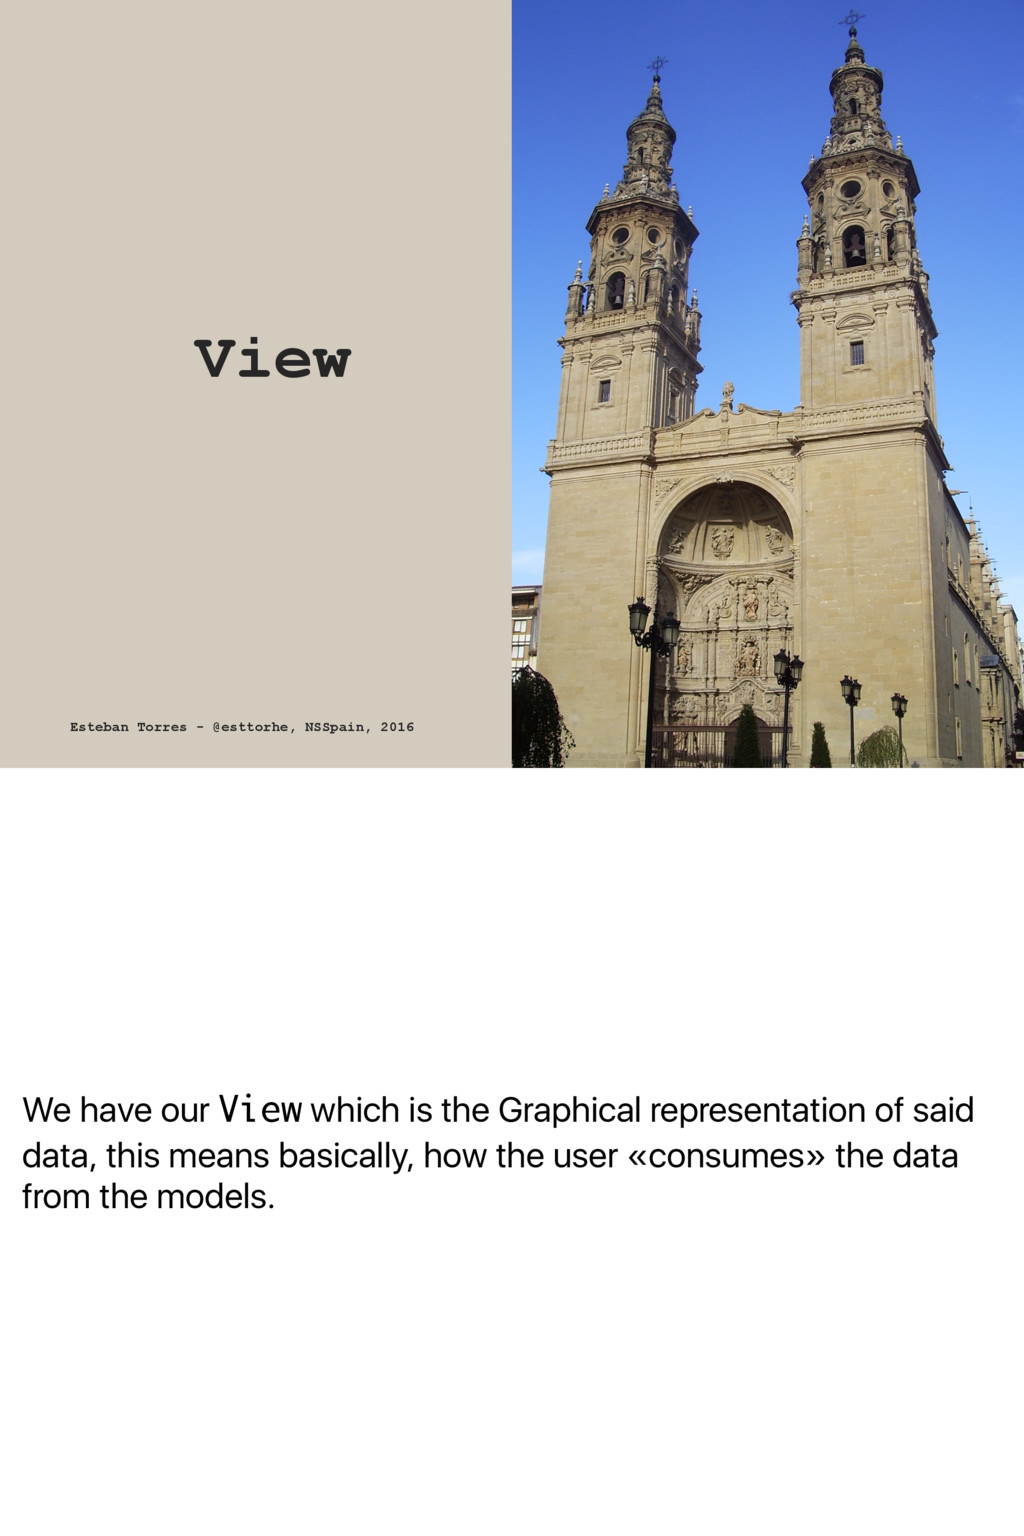 We have our View which is the Graphical represe...